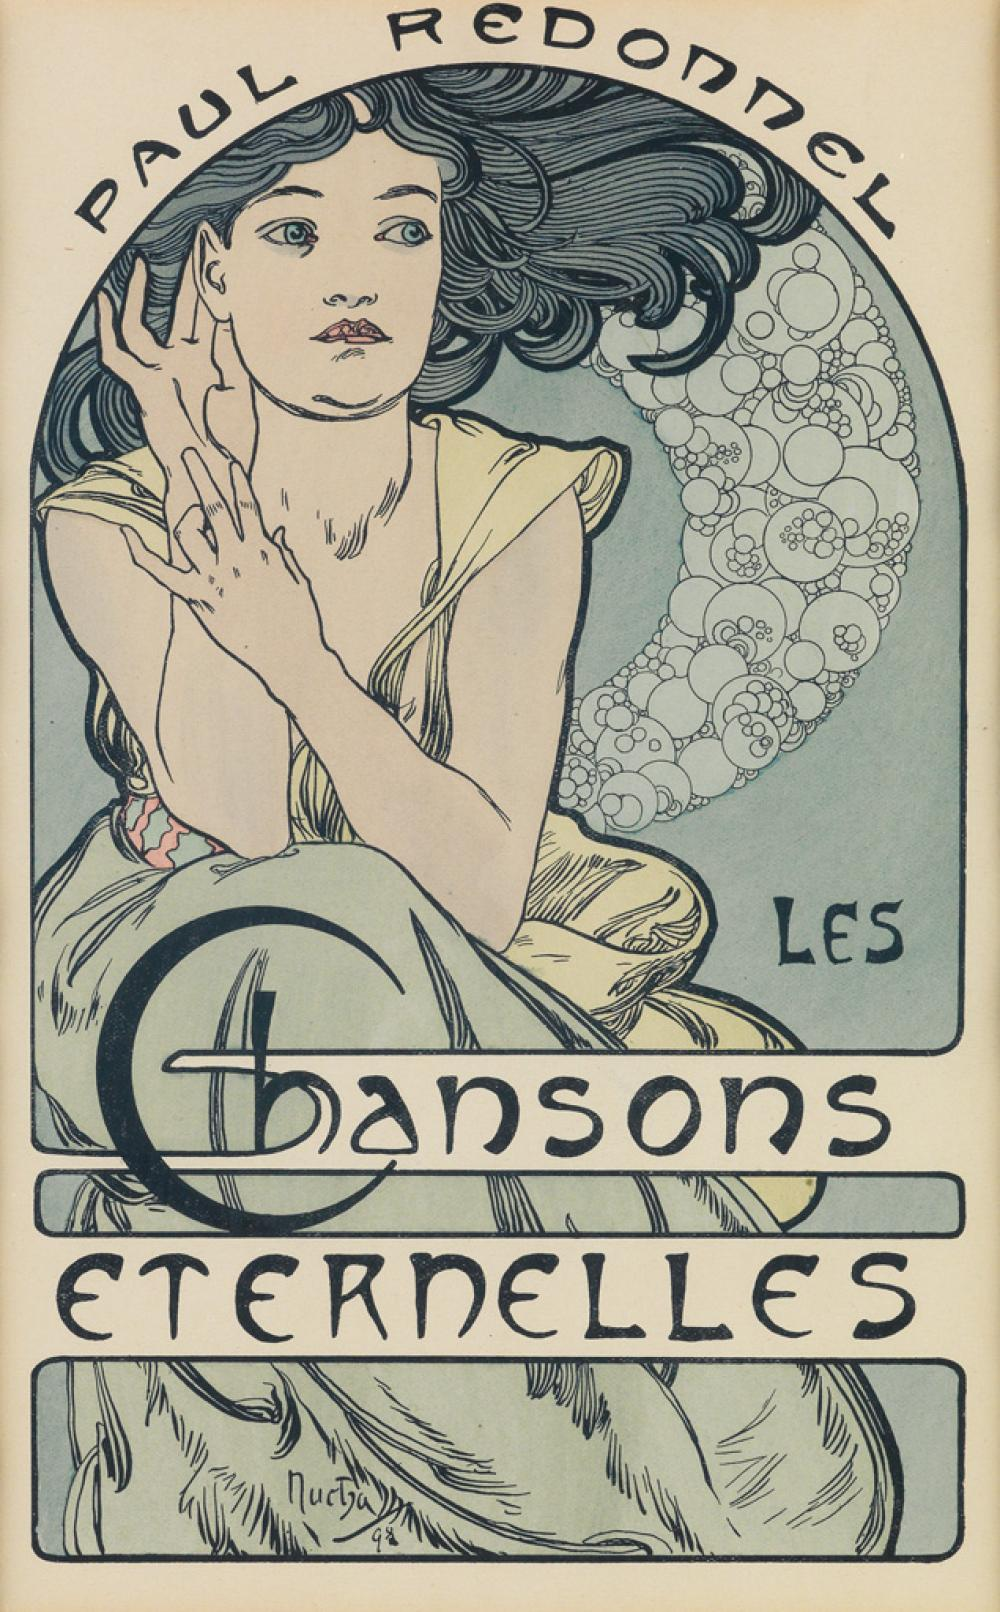 ALPHONSE MUCHA (1860-1939). LES CHANSONS ETERNELLES. Frontispiece. 1898. 10x6 inches, 26x16 cm.